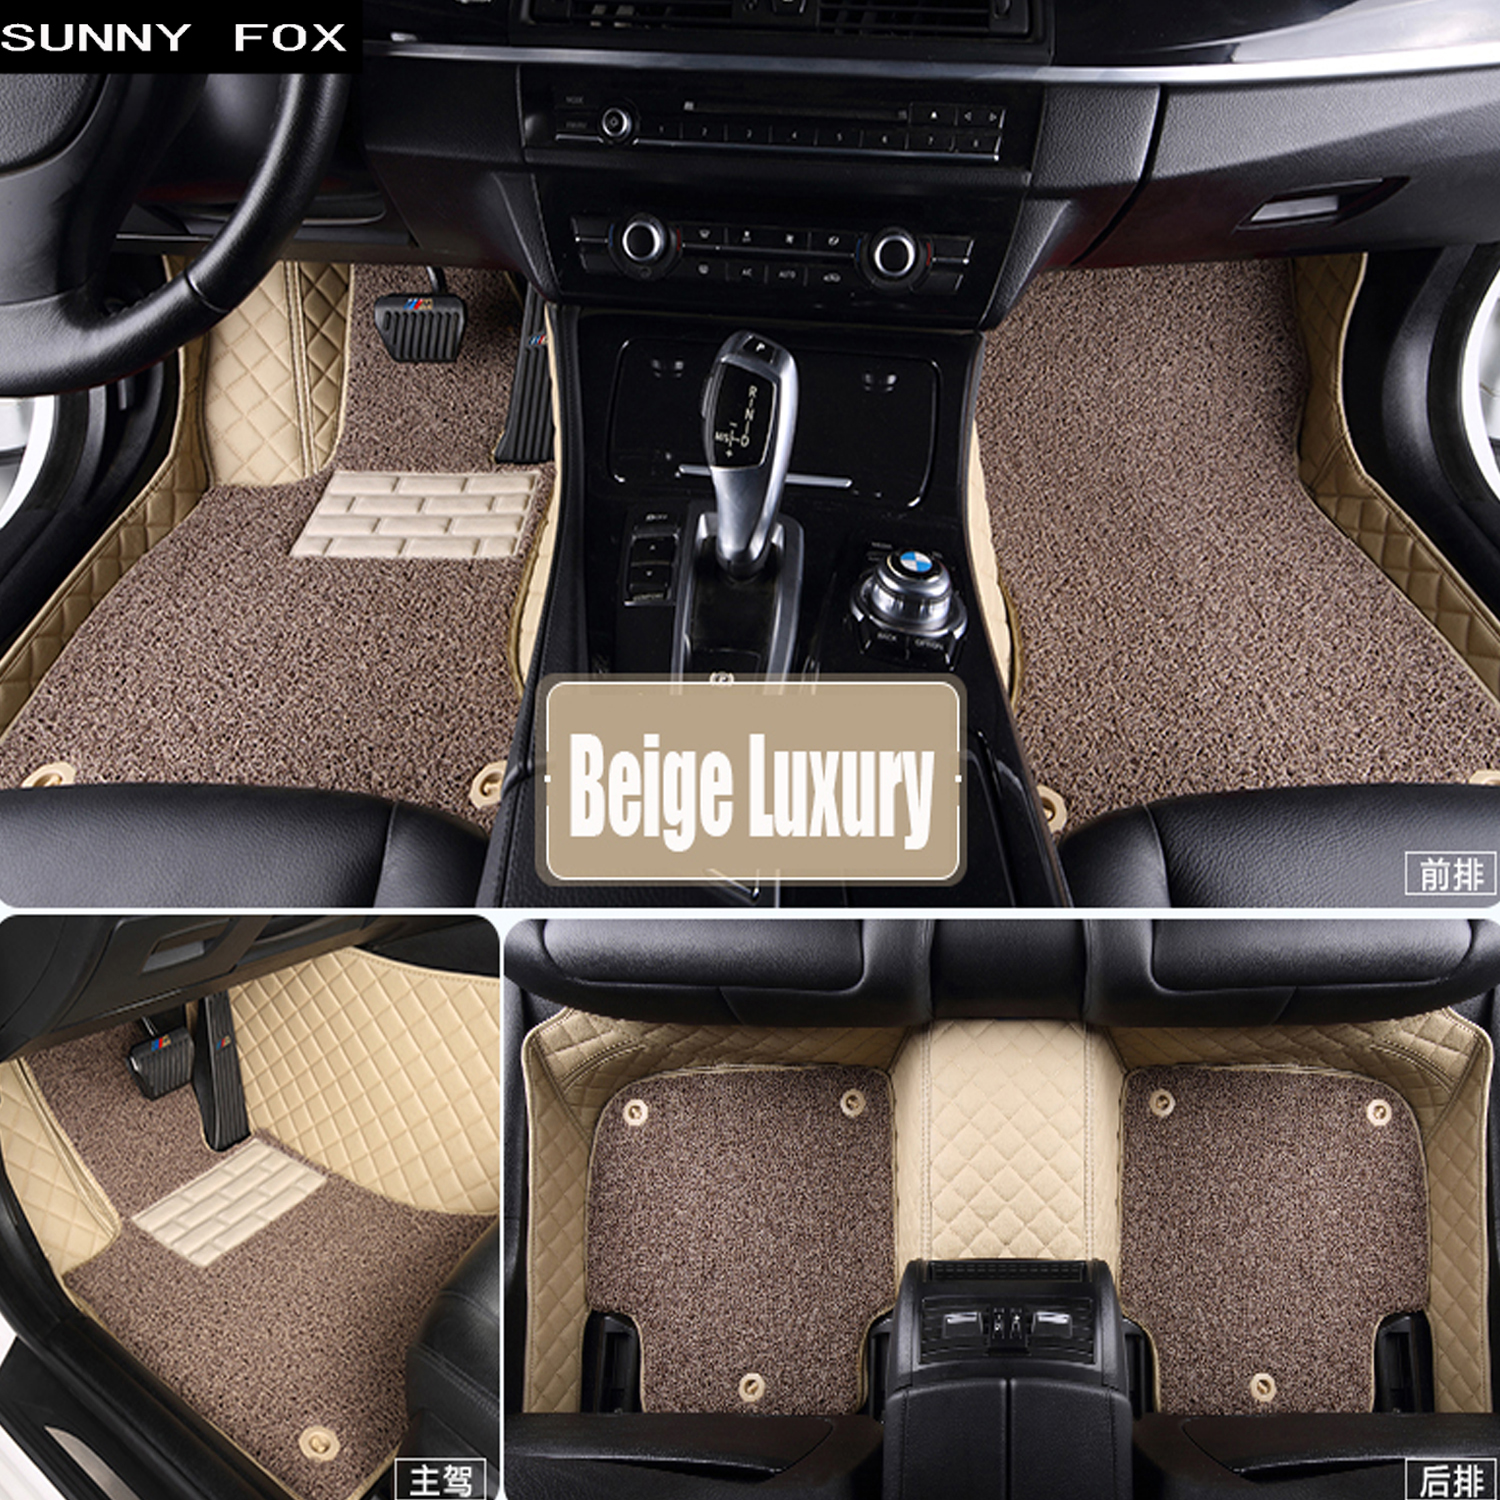 Car floor mats for <font><b>Mercedes</b></font> Benz W246 <font><b>B</b></font> class 160 <font><b>180</b></font> 200 220 B160 B180 B200 car-styling case rugs liners (2012- ) image